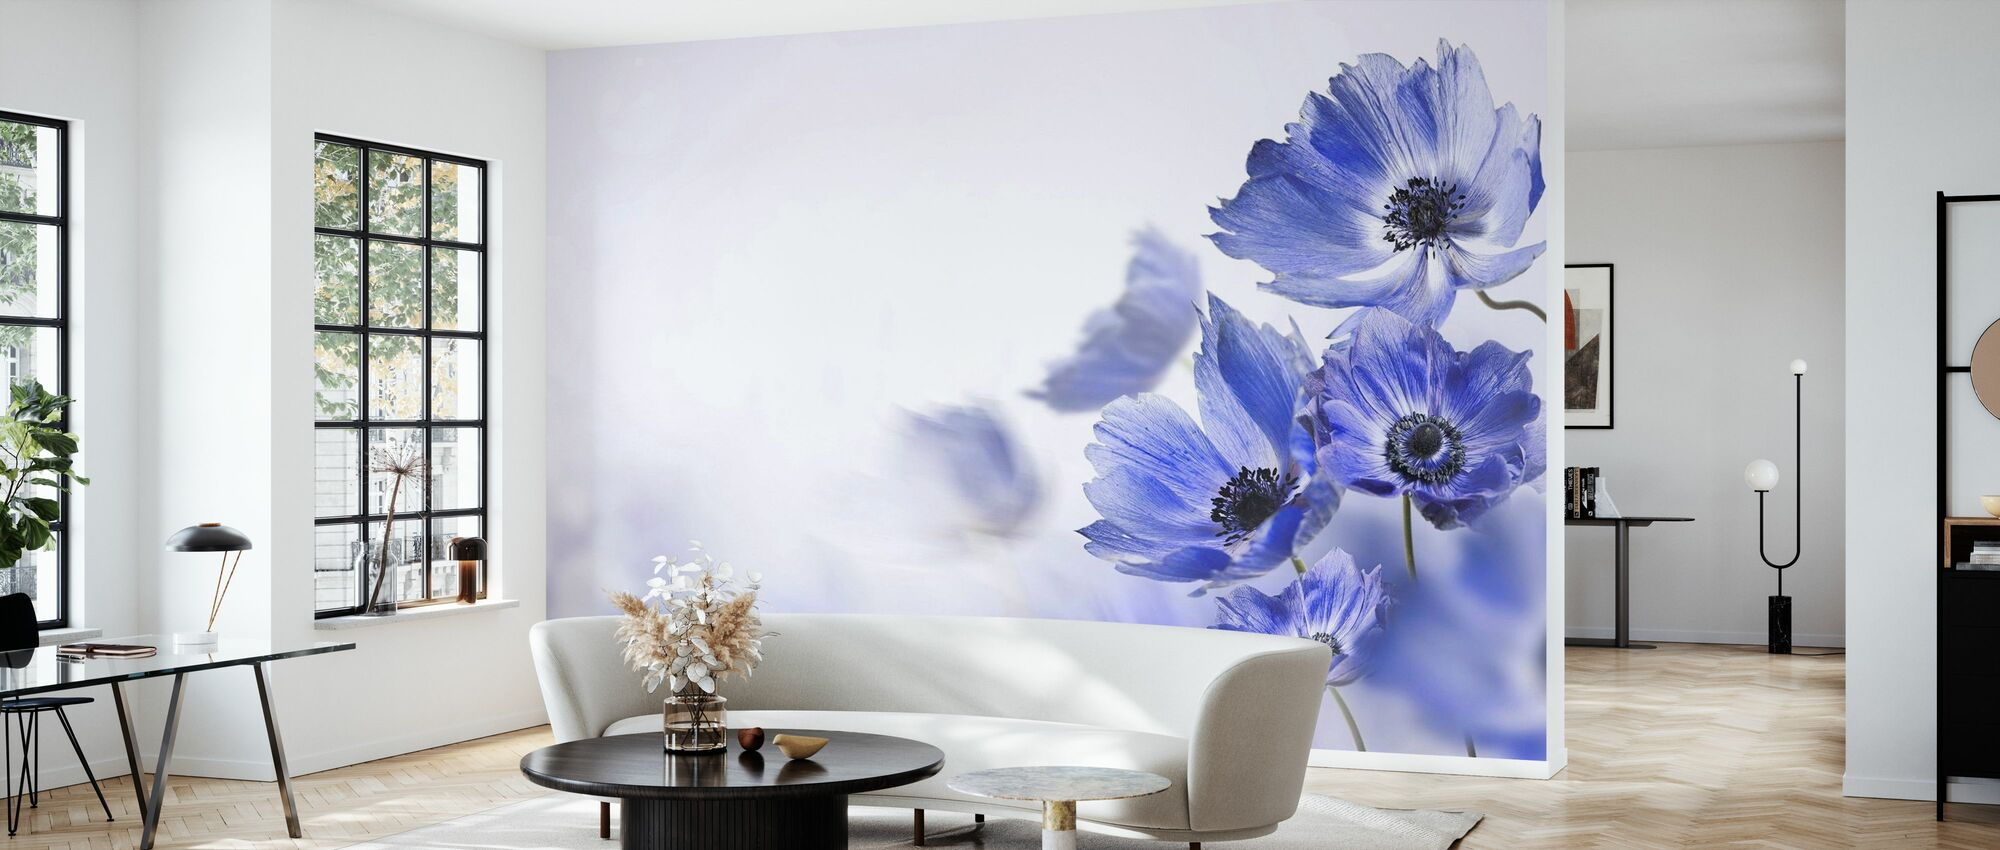 Gloaming Blue Flowers - Wallpaper - Living Room